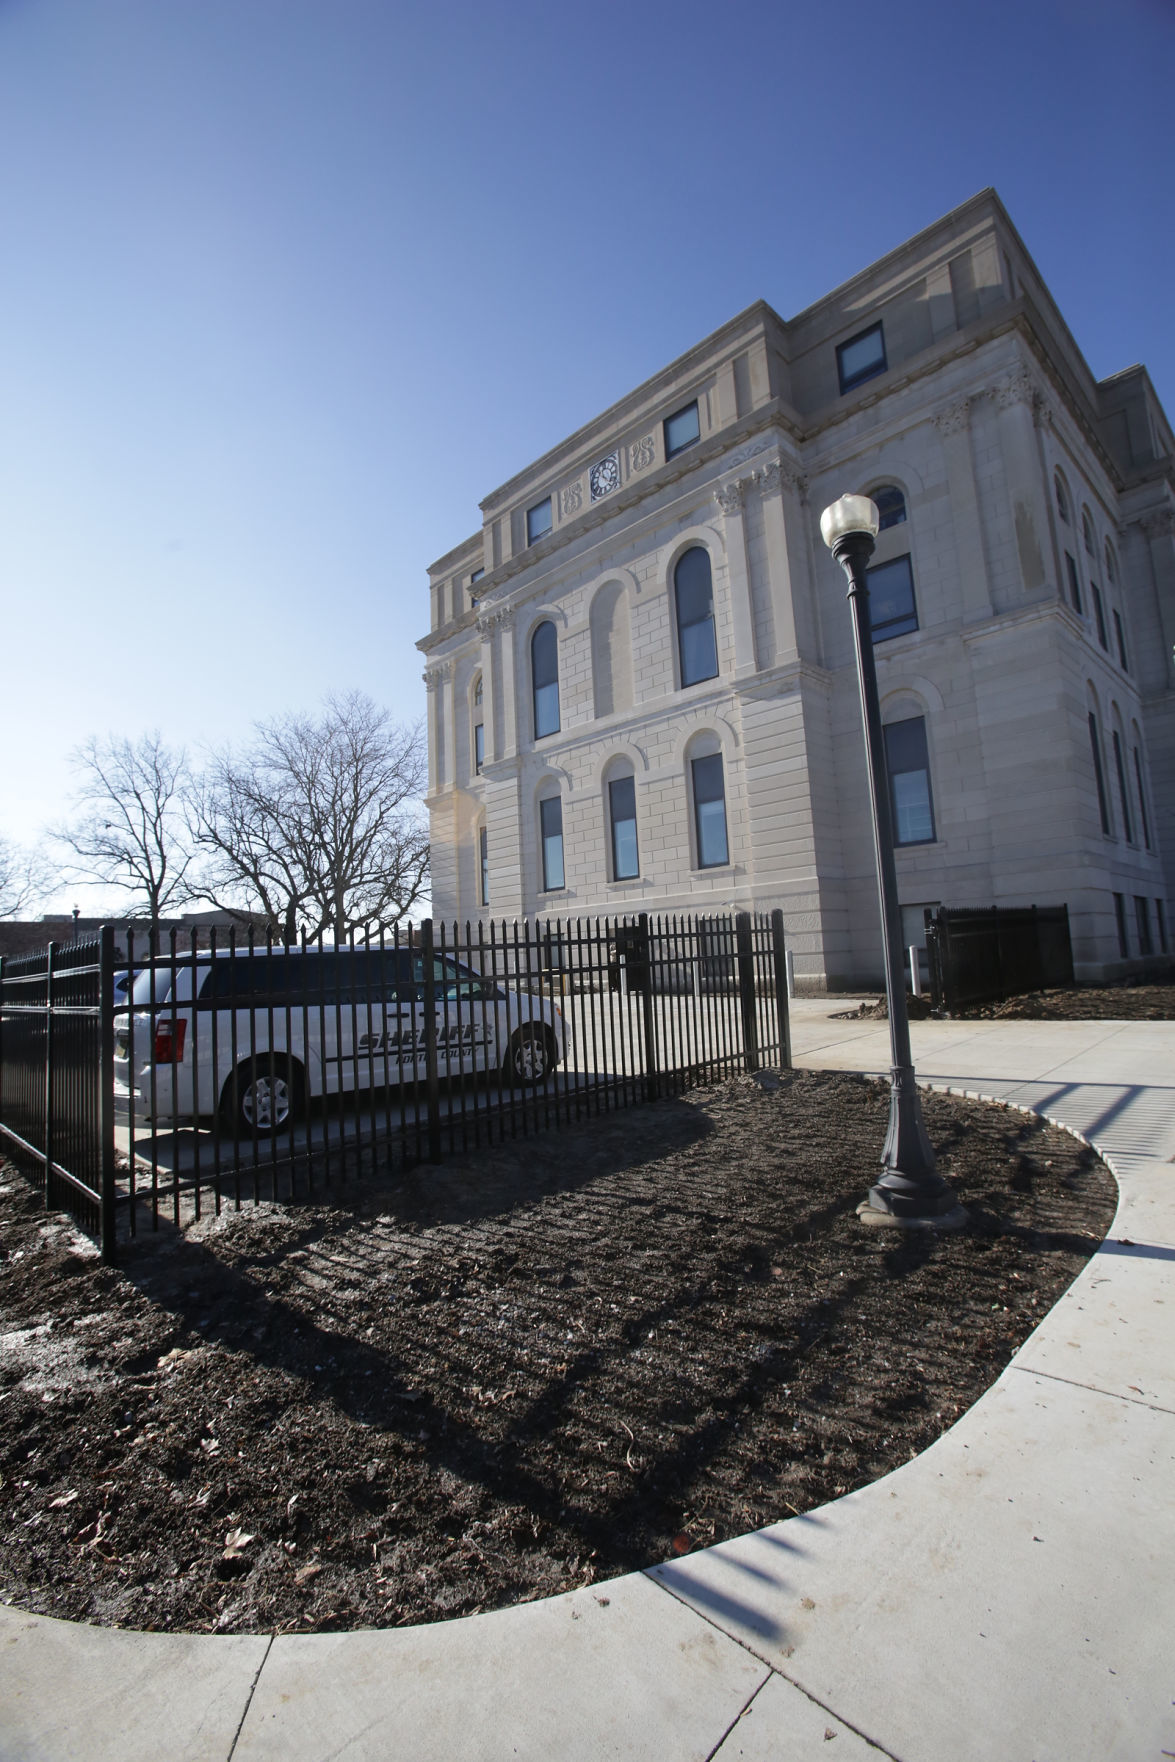 Major renovation work at Porter County Courthouse halfway done